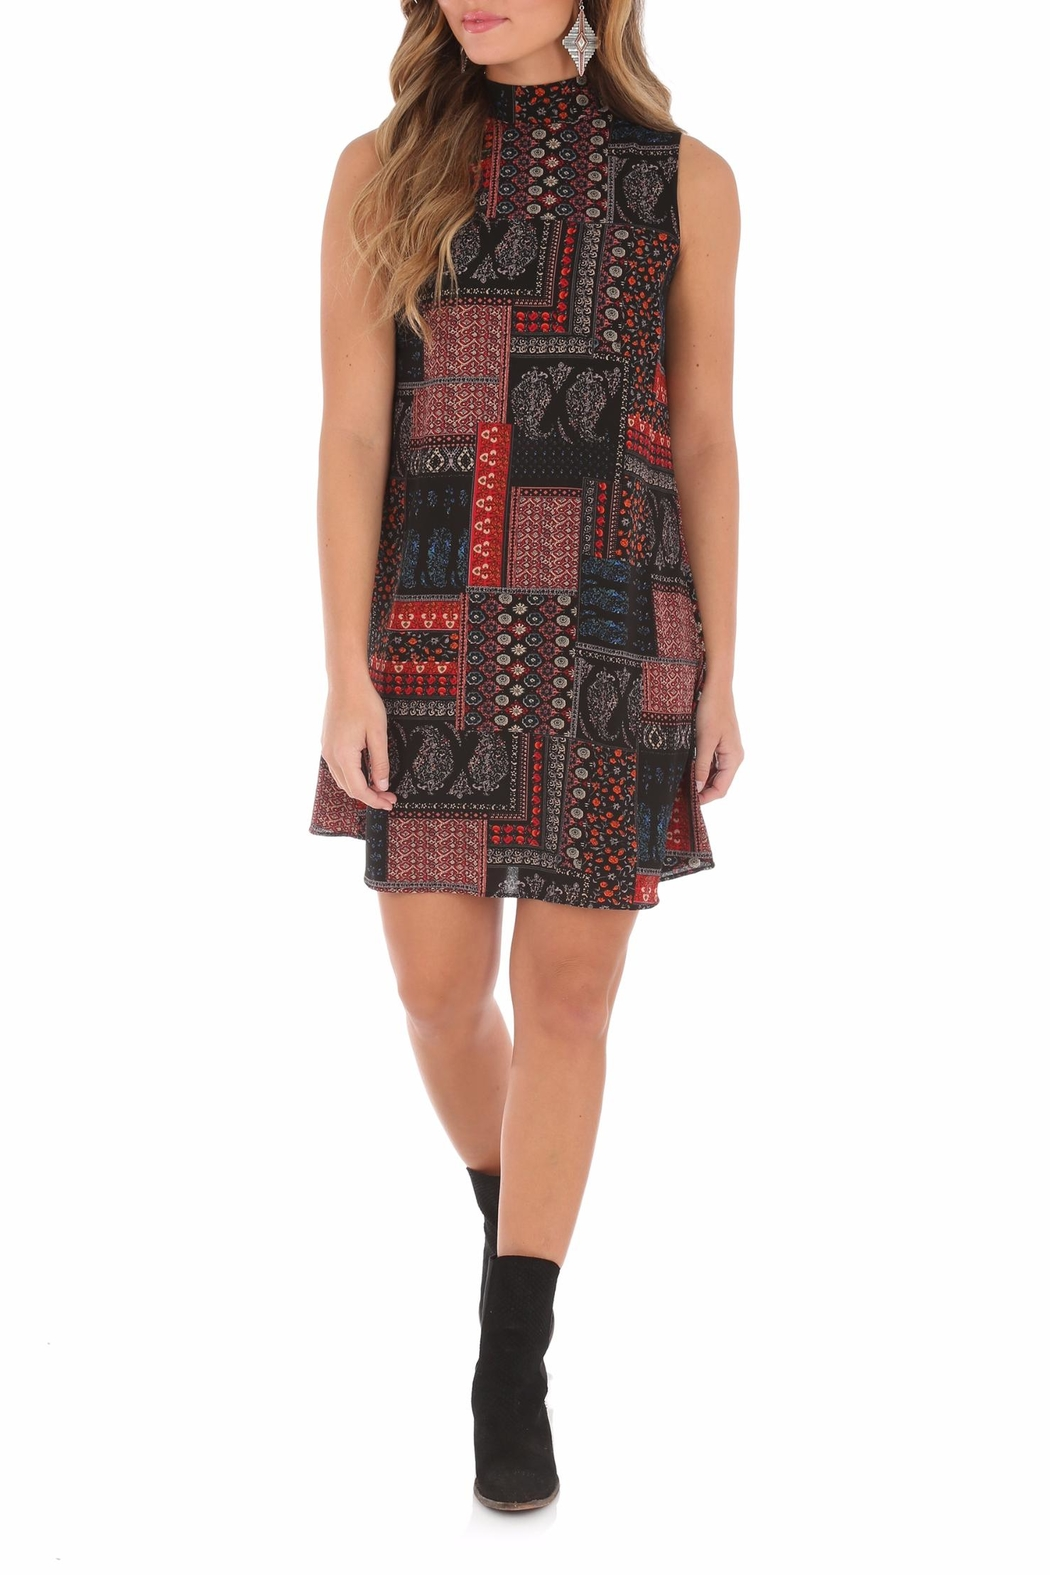 Wrangler High Collared Dress - Front Cropped Image